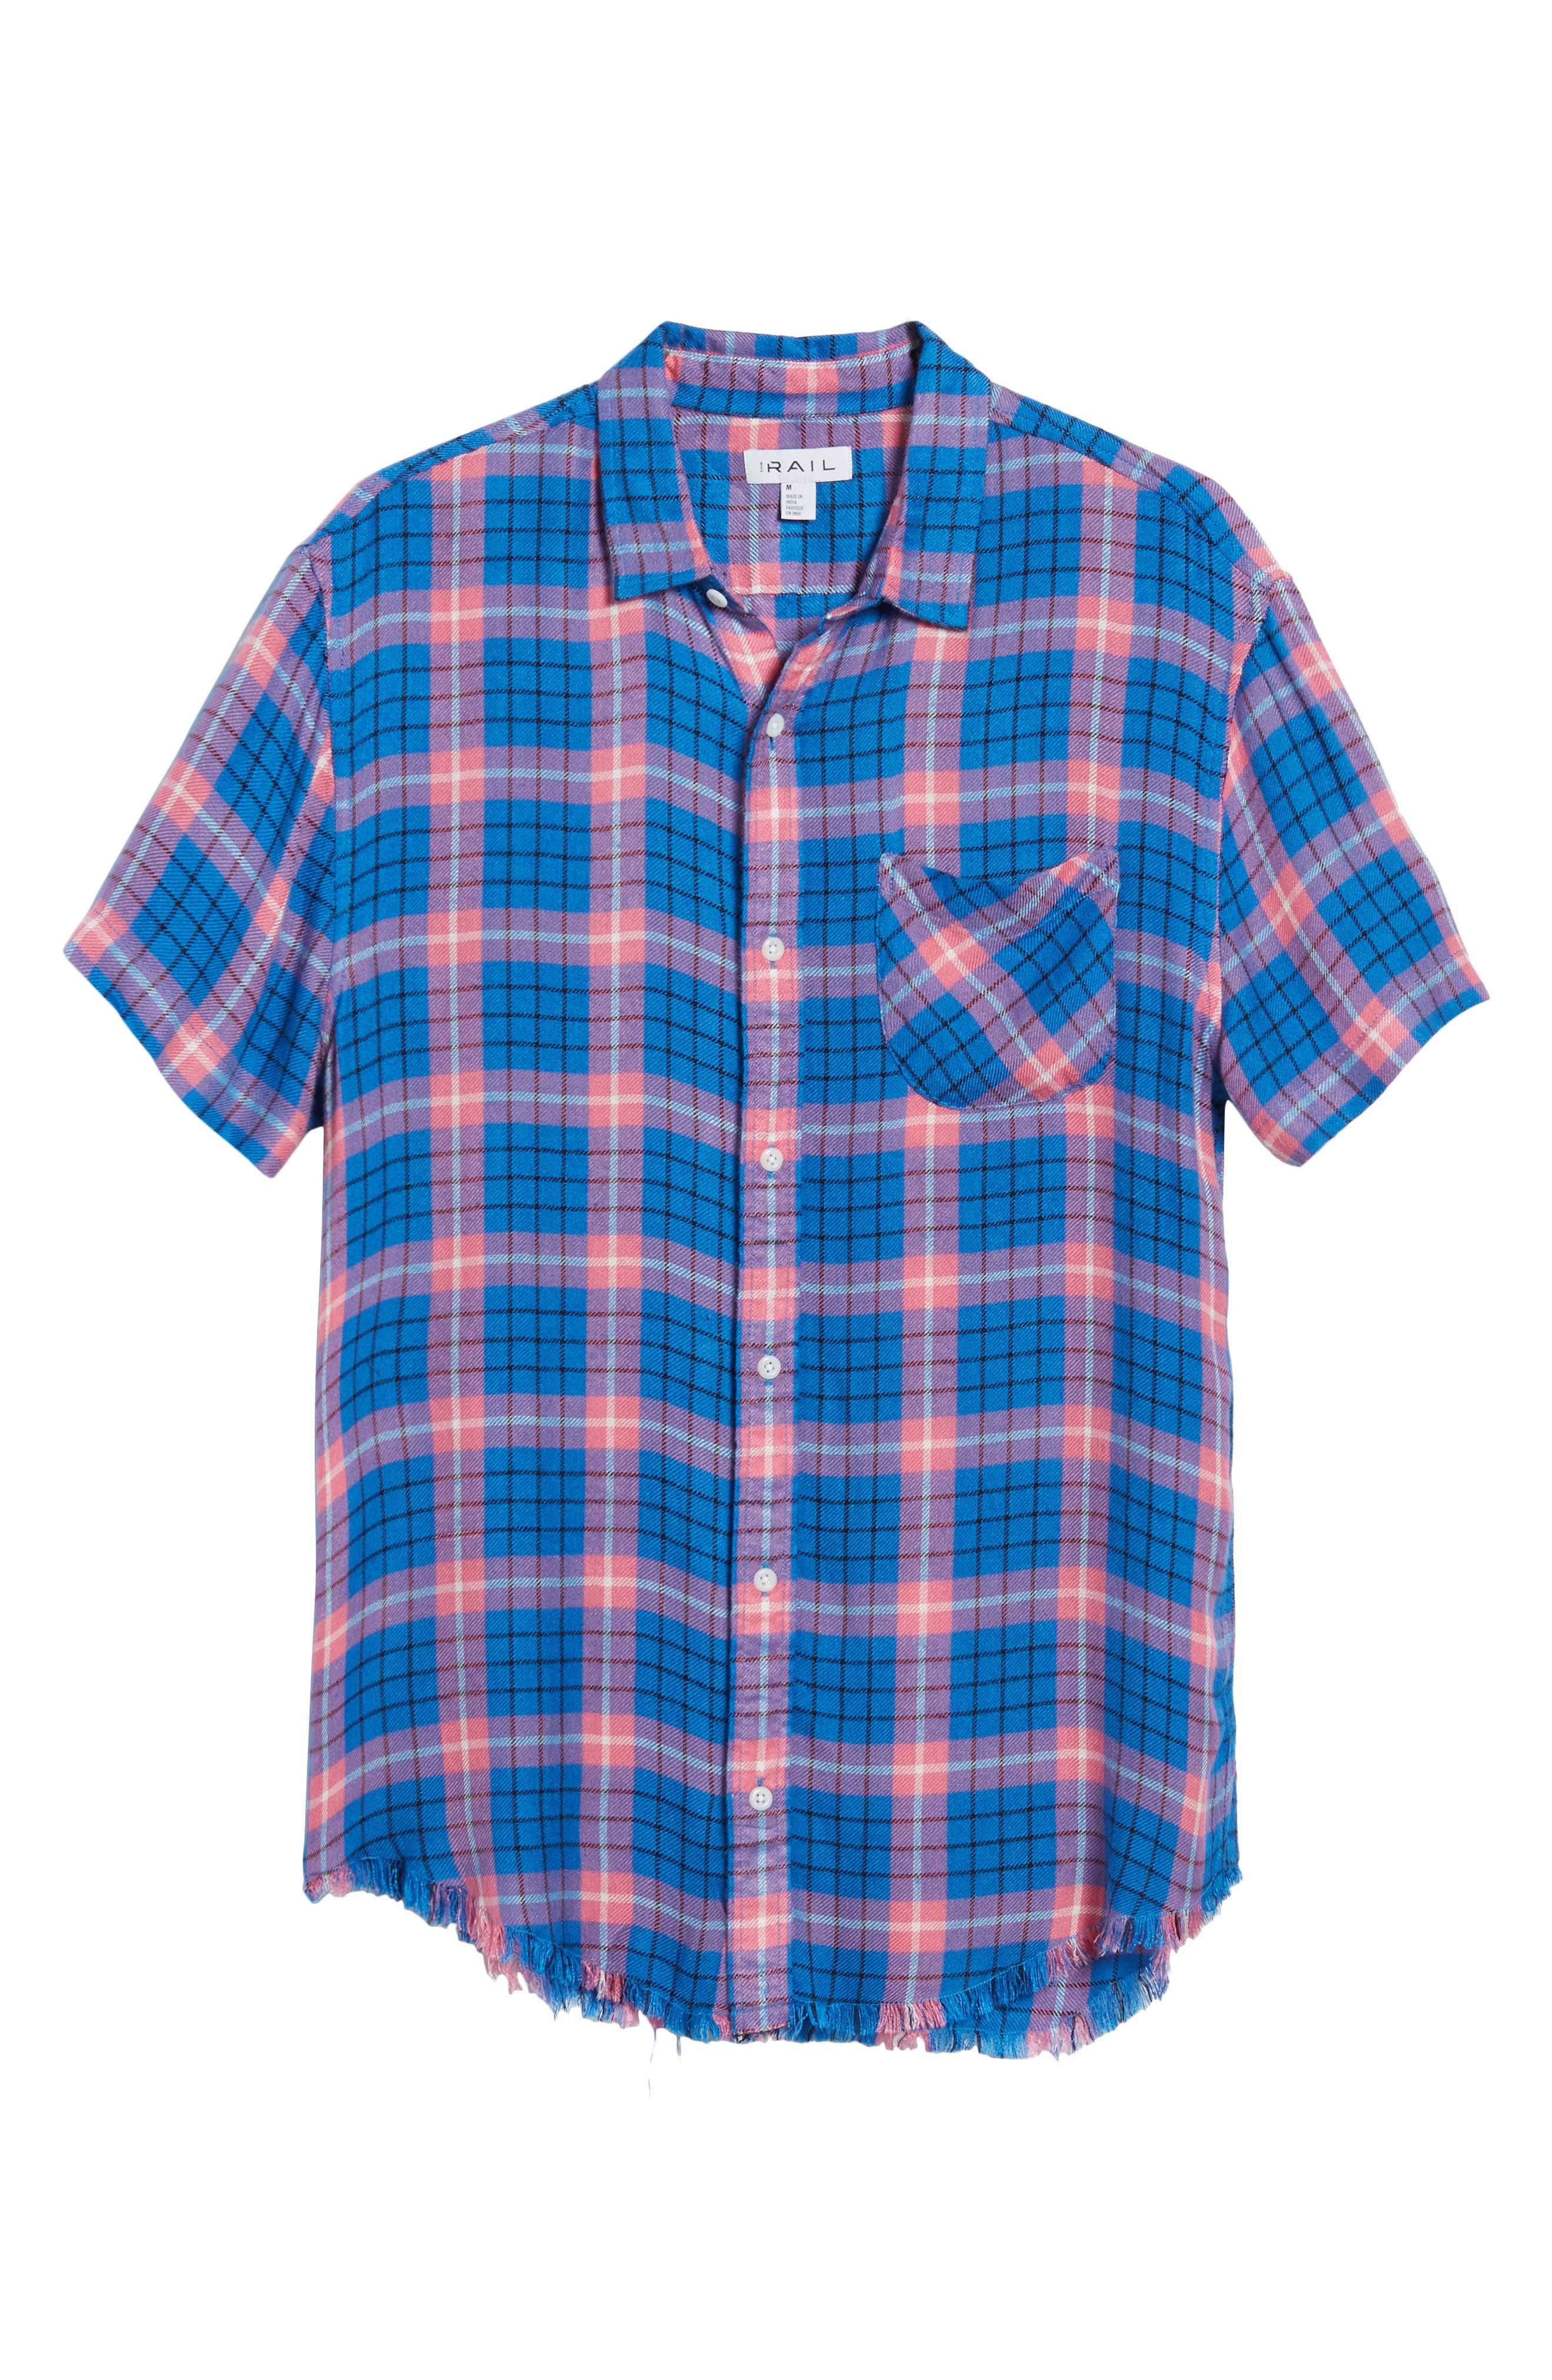 Flannel Woven Shirt,                             Alternate thumbnail 6, color,                             BLUE CAMP PINK BECK PLAID